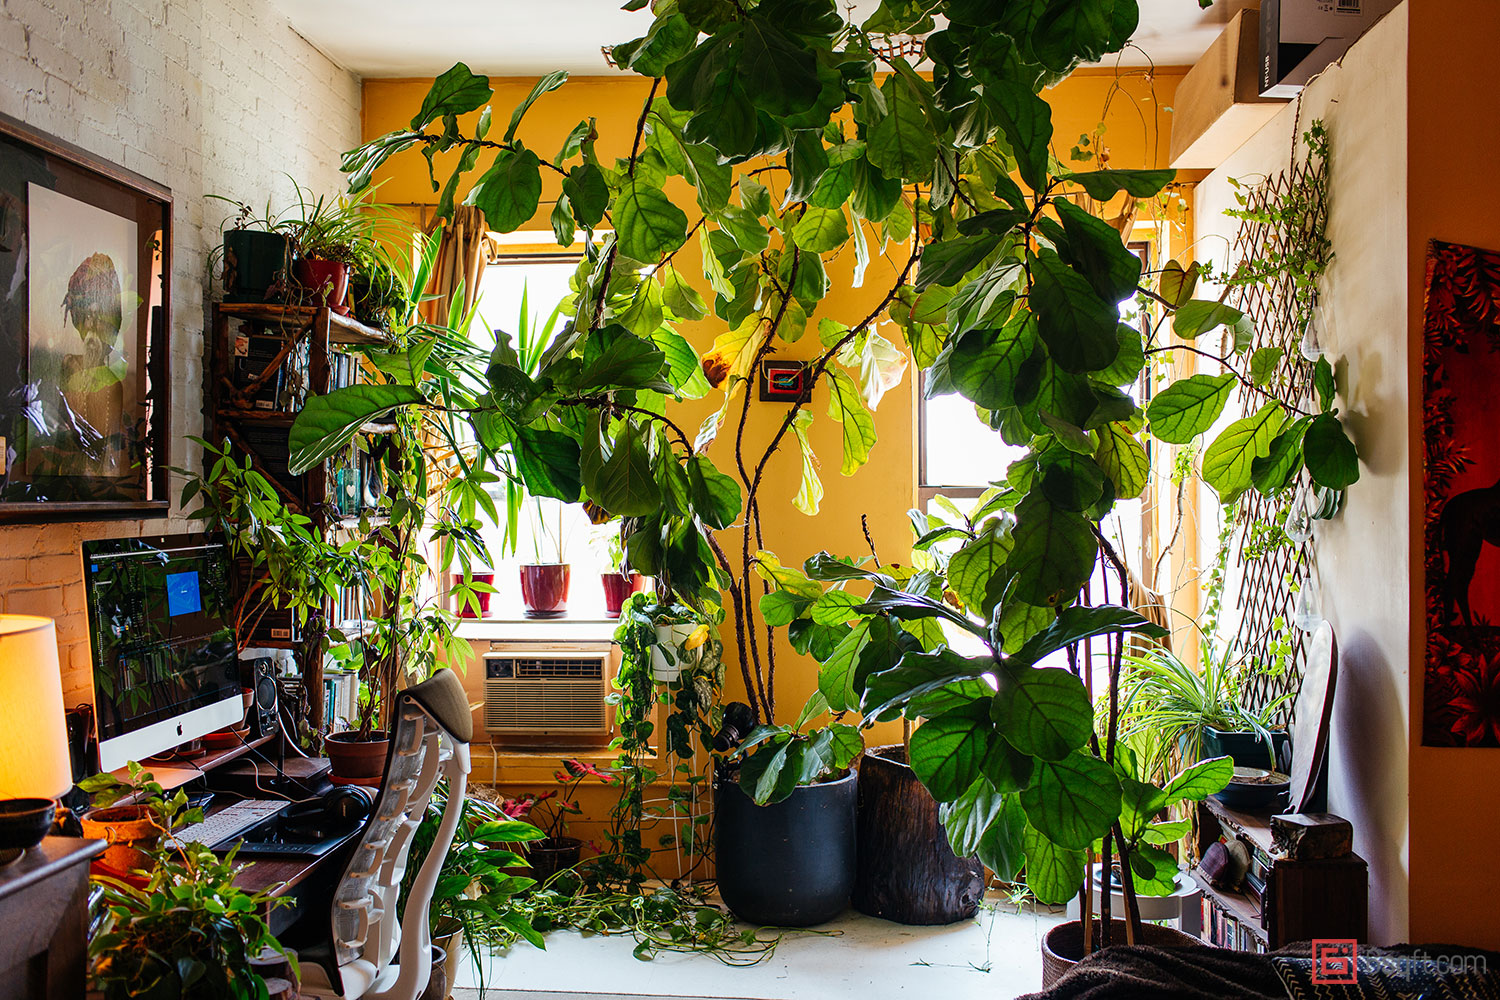 How to style your houseplants, 5 tips from a pro